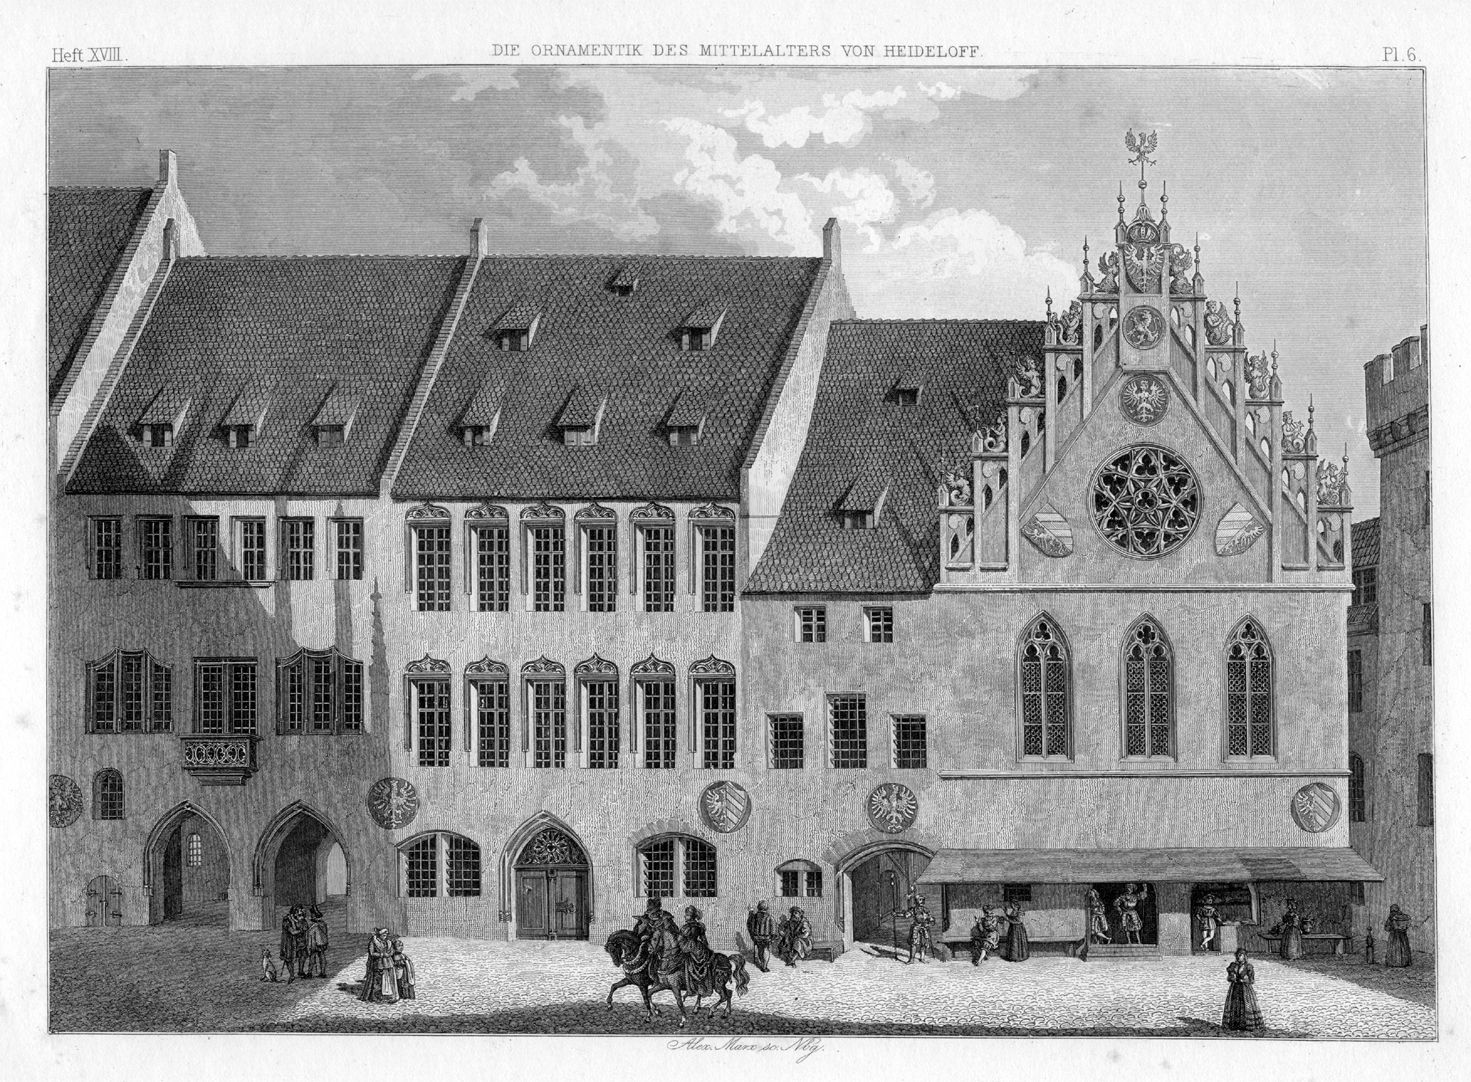 Ornamentation in the Middle Ages City Hall, West front before the reconstruction by Jacob Wolff, supposedly according to  a hand sketch of 1616